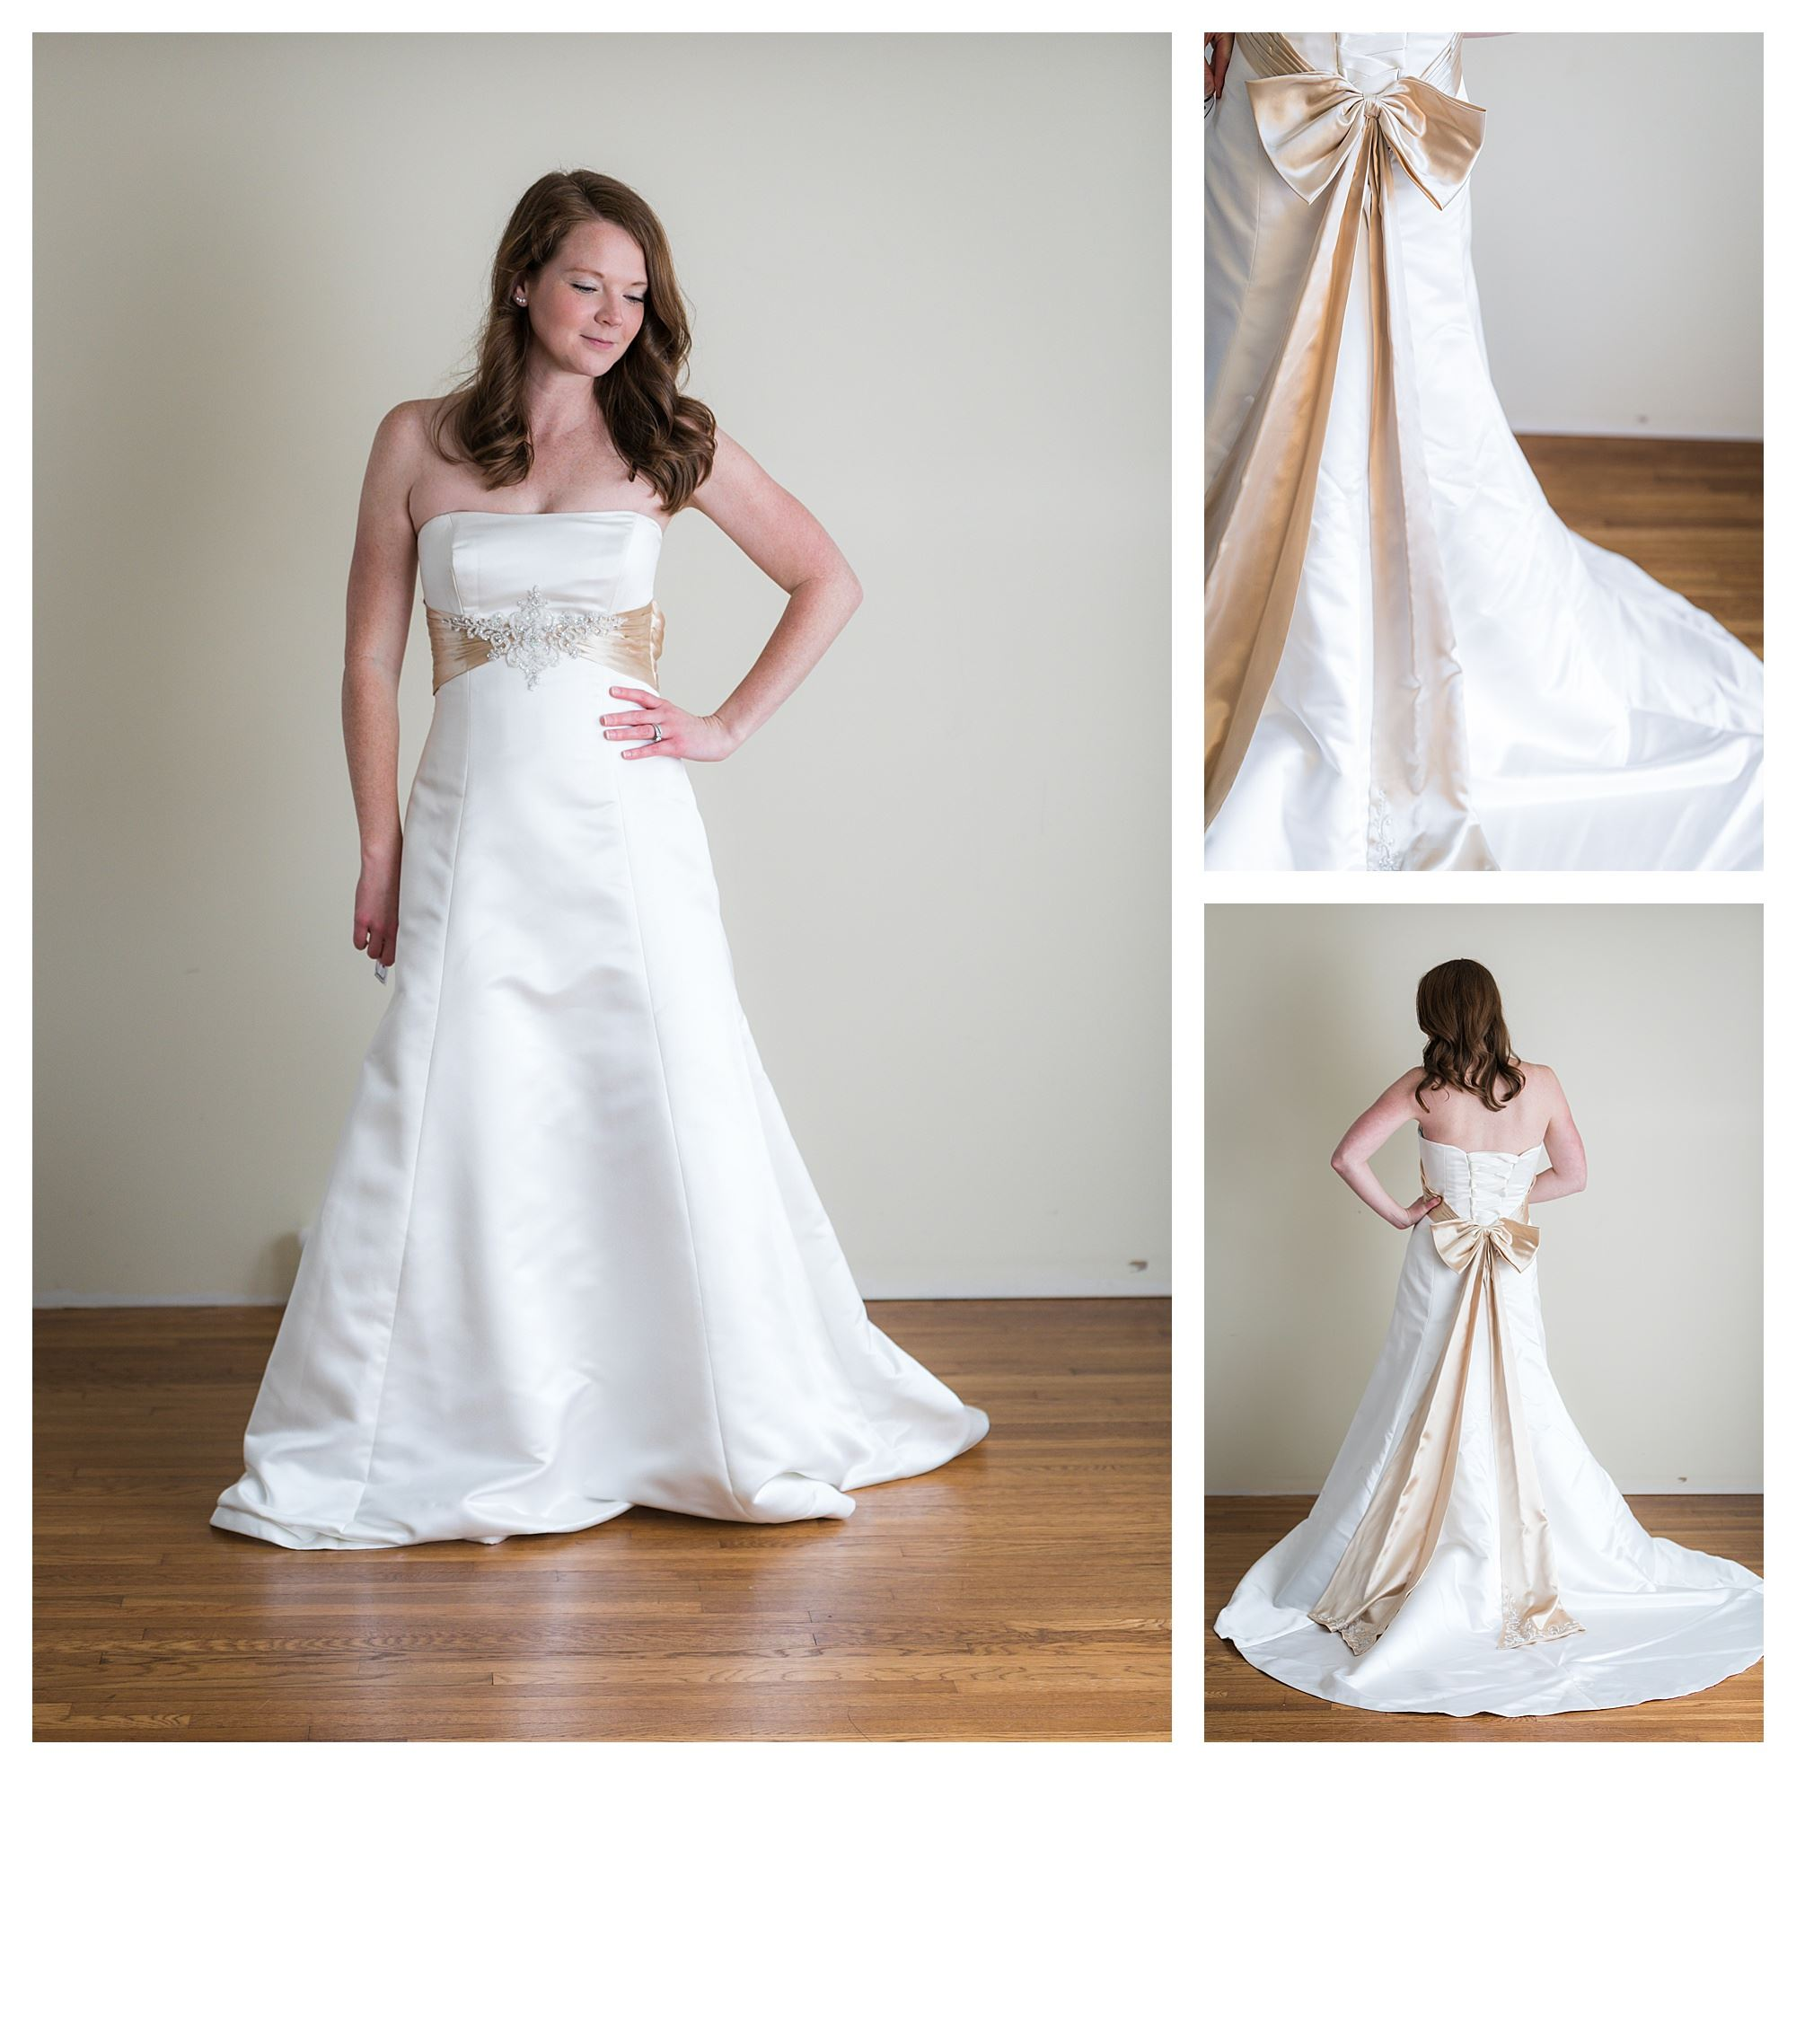 Sonja - Size 12 - Ivory/Lt Gold - Originally priced $999 - Sample box price $699